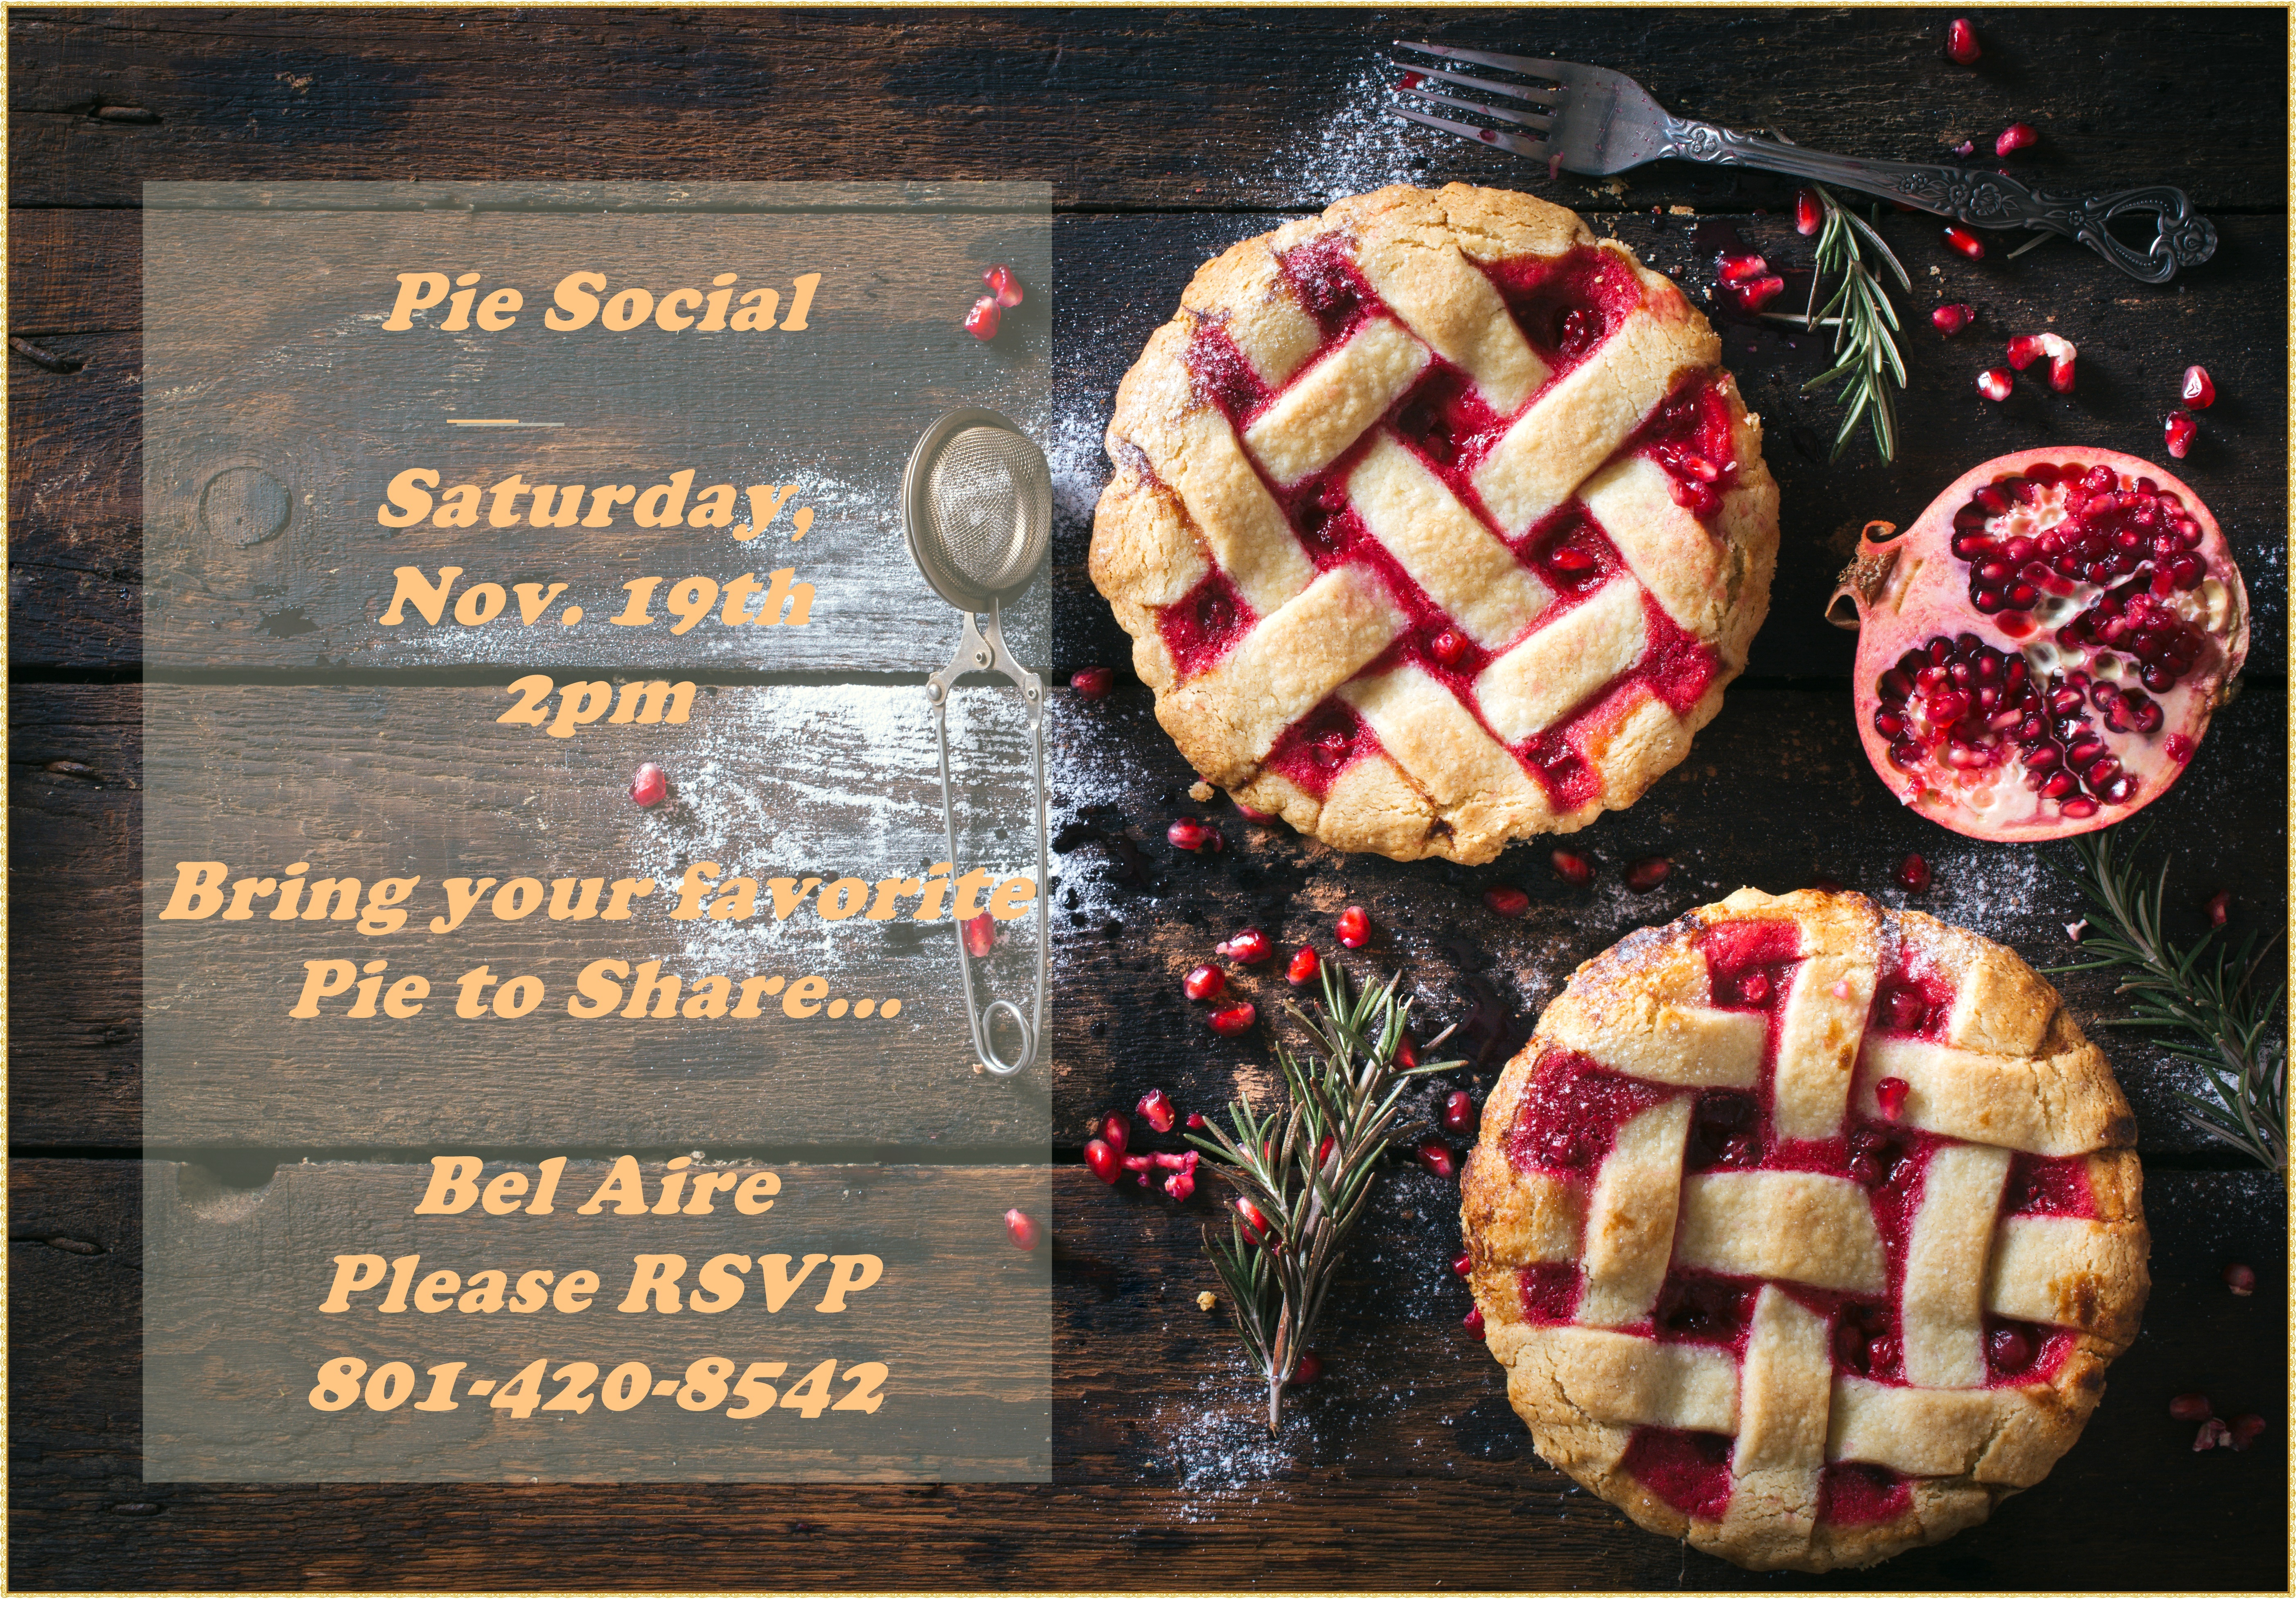 Bel Aire Homes - Pie Social